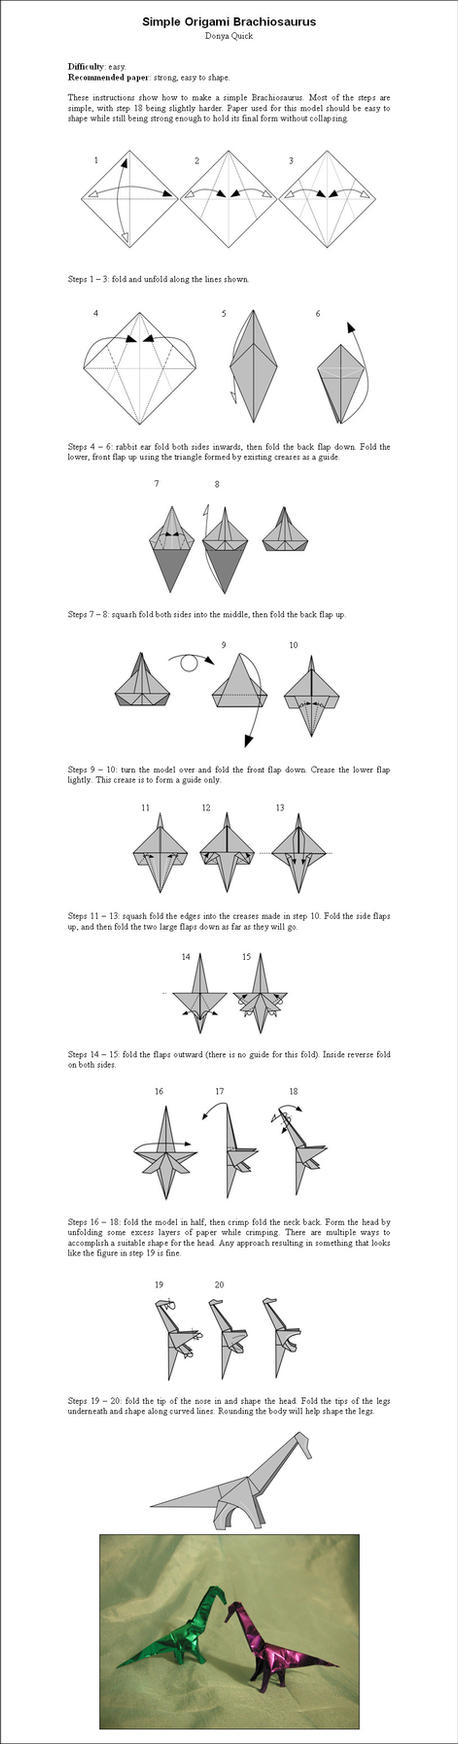 Origami    Simple    Diagrams        EMBROIDERY      ORIGAMI